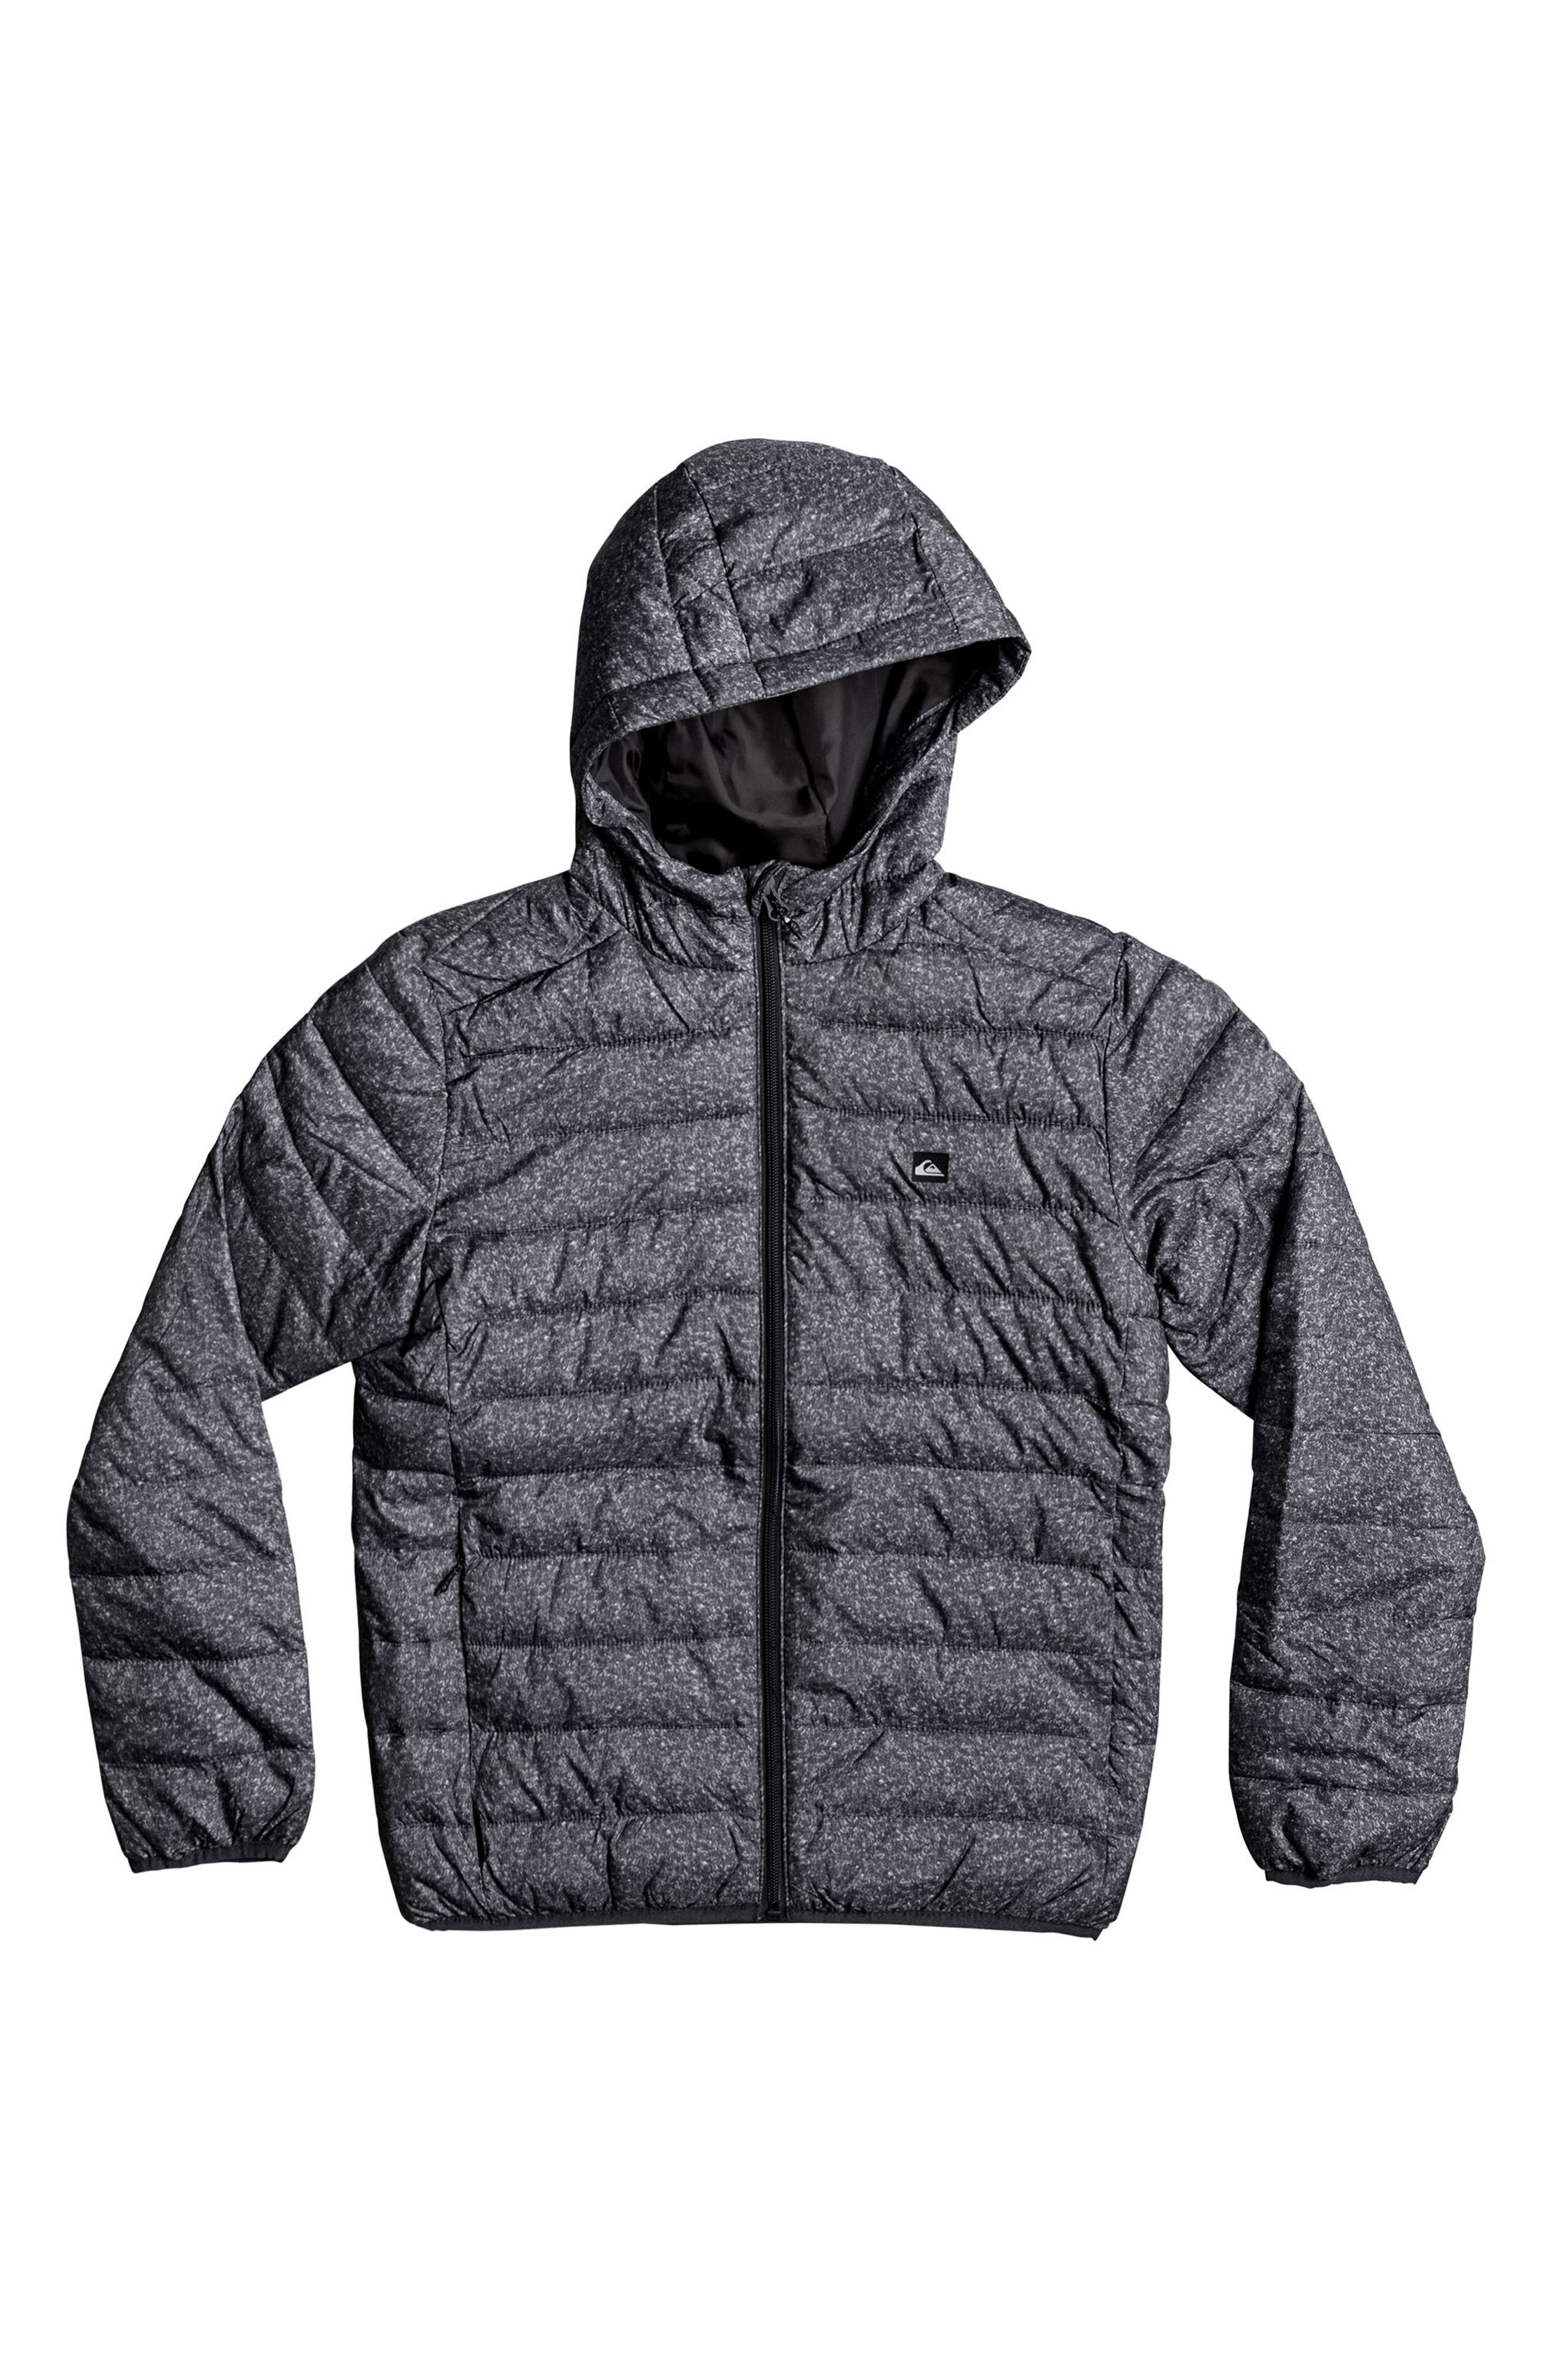 Scaly Water Resistant Hooded Puffer Jacket,                         Main,                         color, Dark Grey Heather Scaly